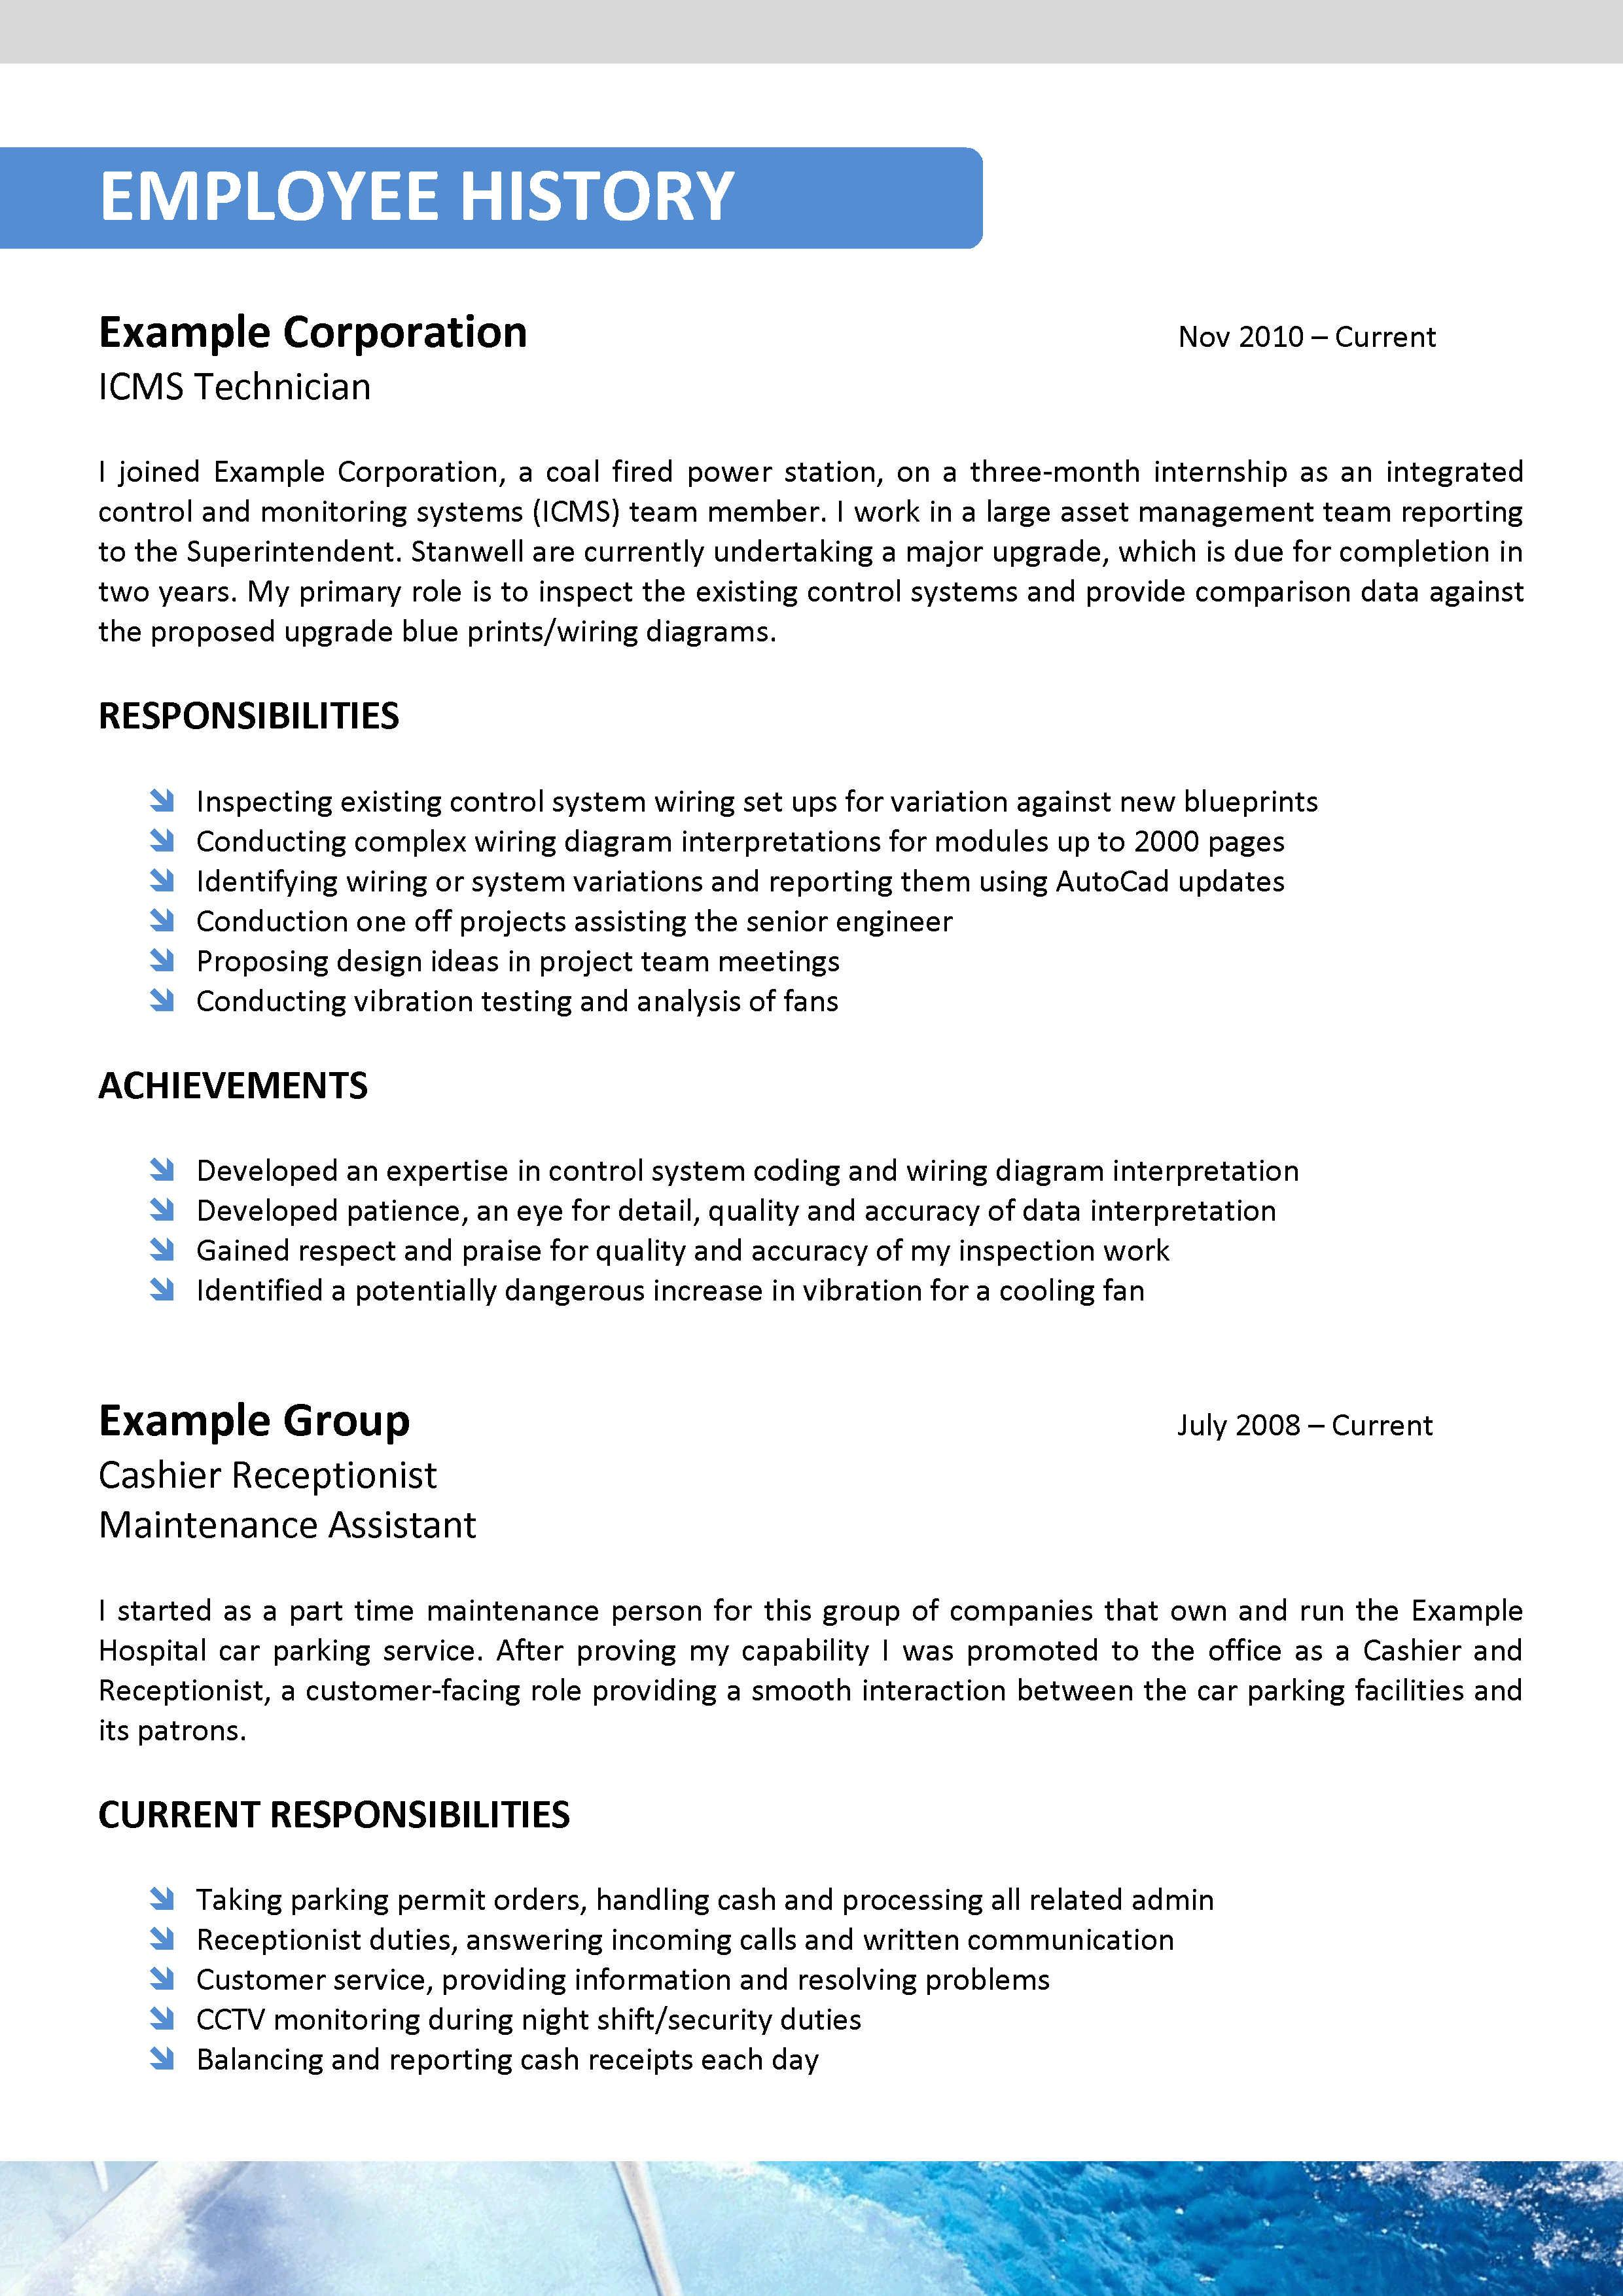 resume wizard in word 2007 same resume different race